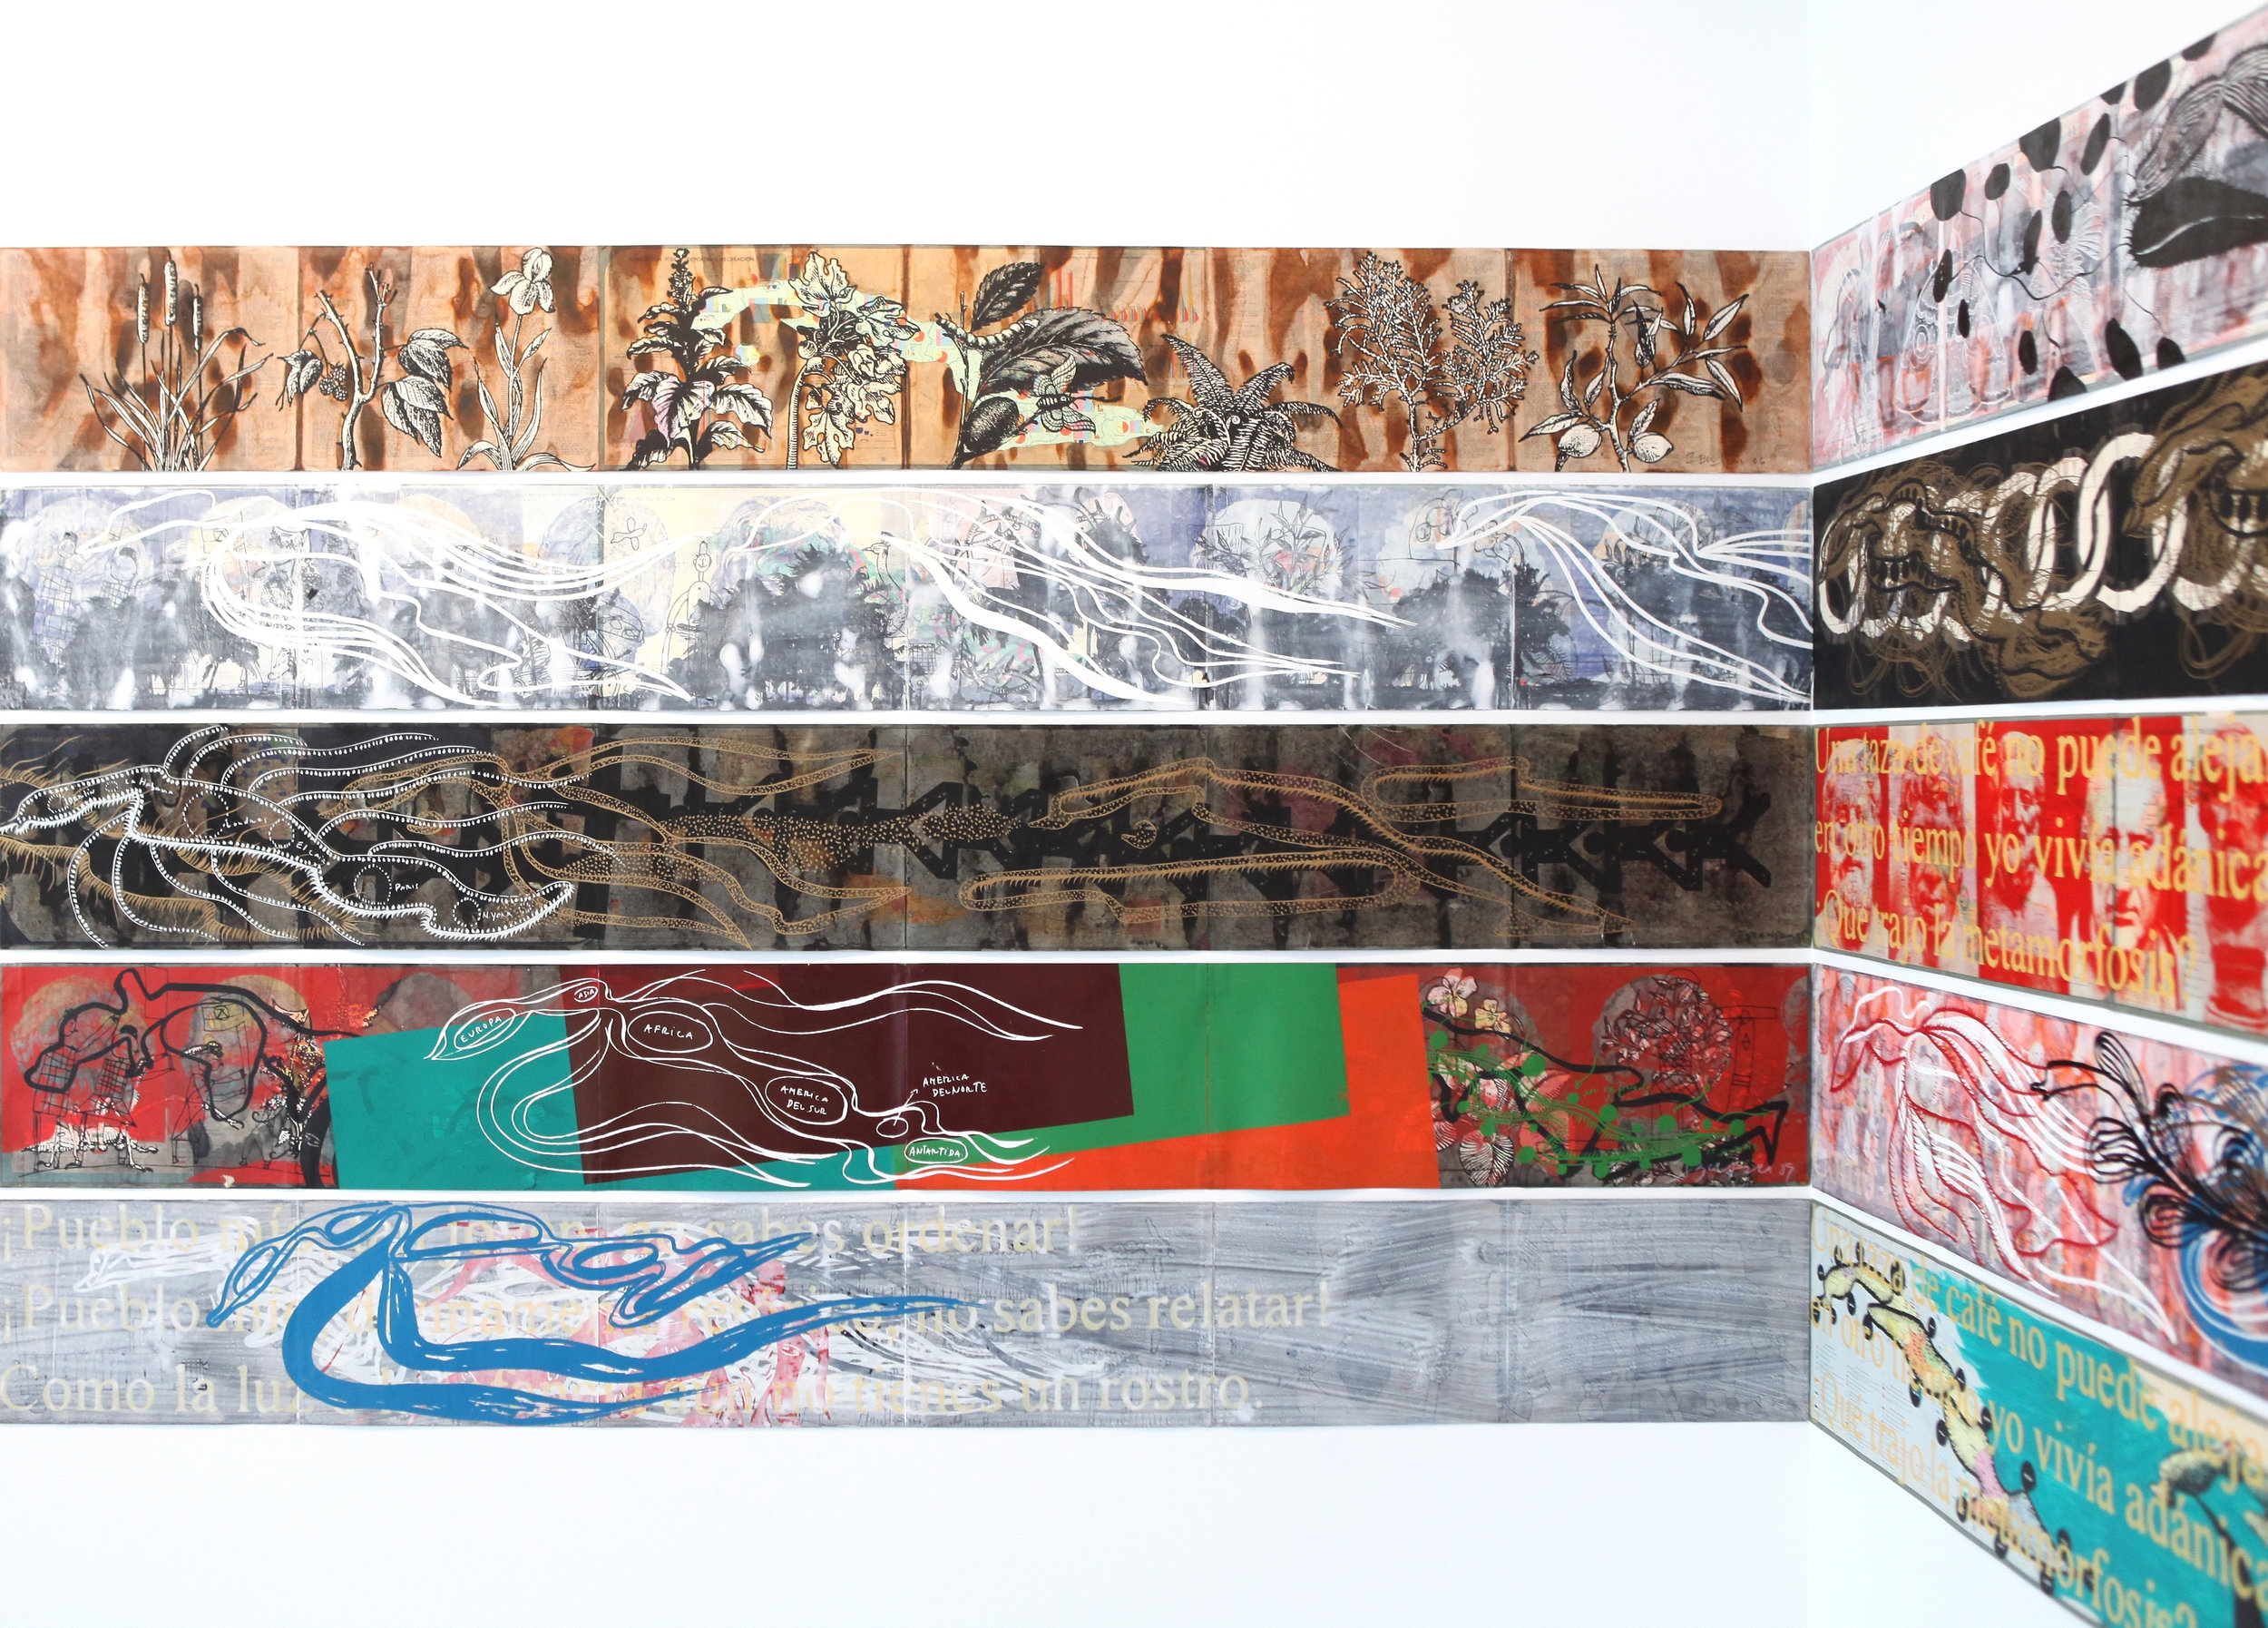 Ibrahim Miranda, from the series  Mapas , 2008-2012. [Image Description: 5 horizontal rows of colorful woodblock prints, with varying images alluding to islands including palm trees, ocean currents, and maps.]